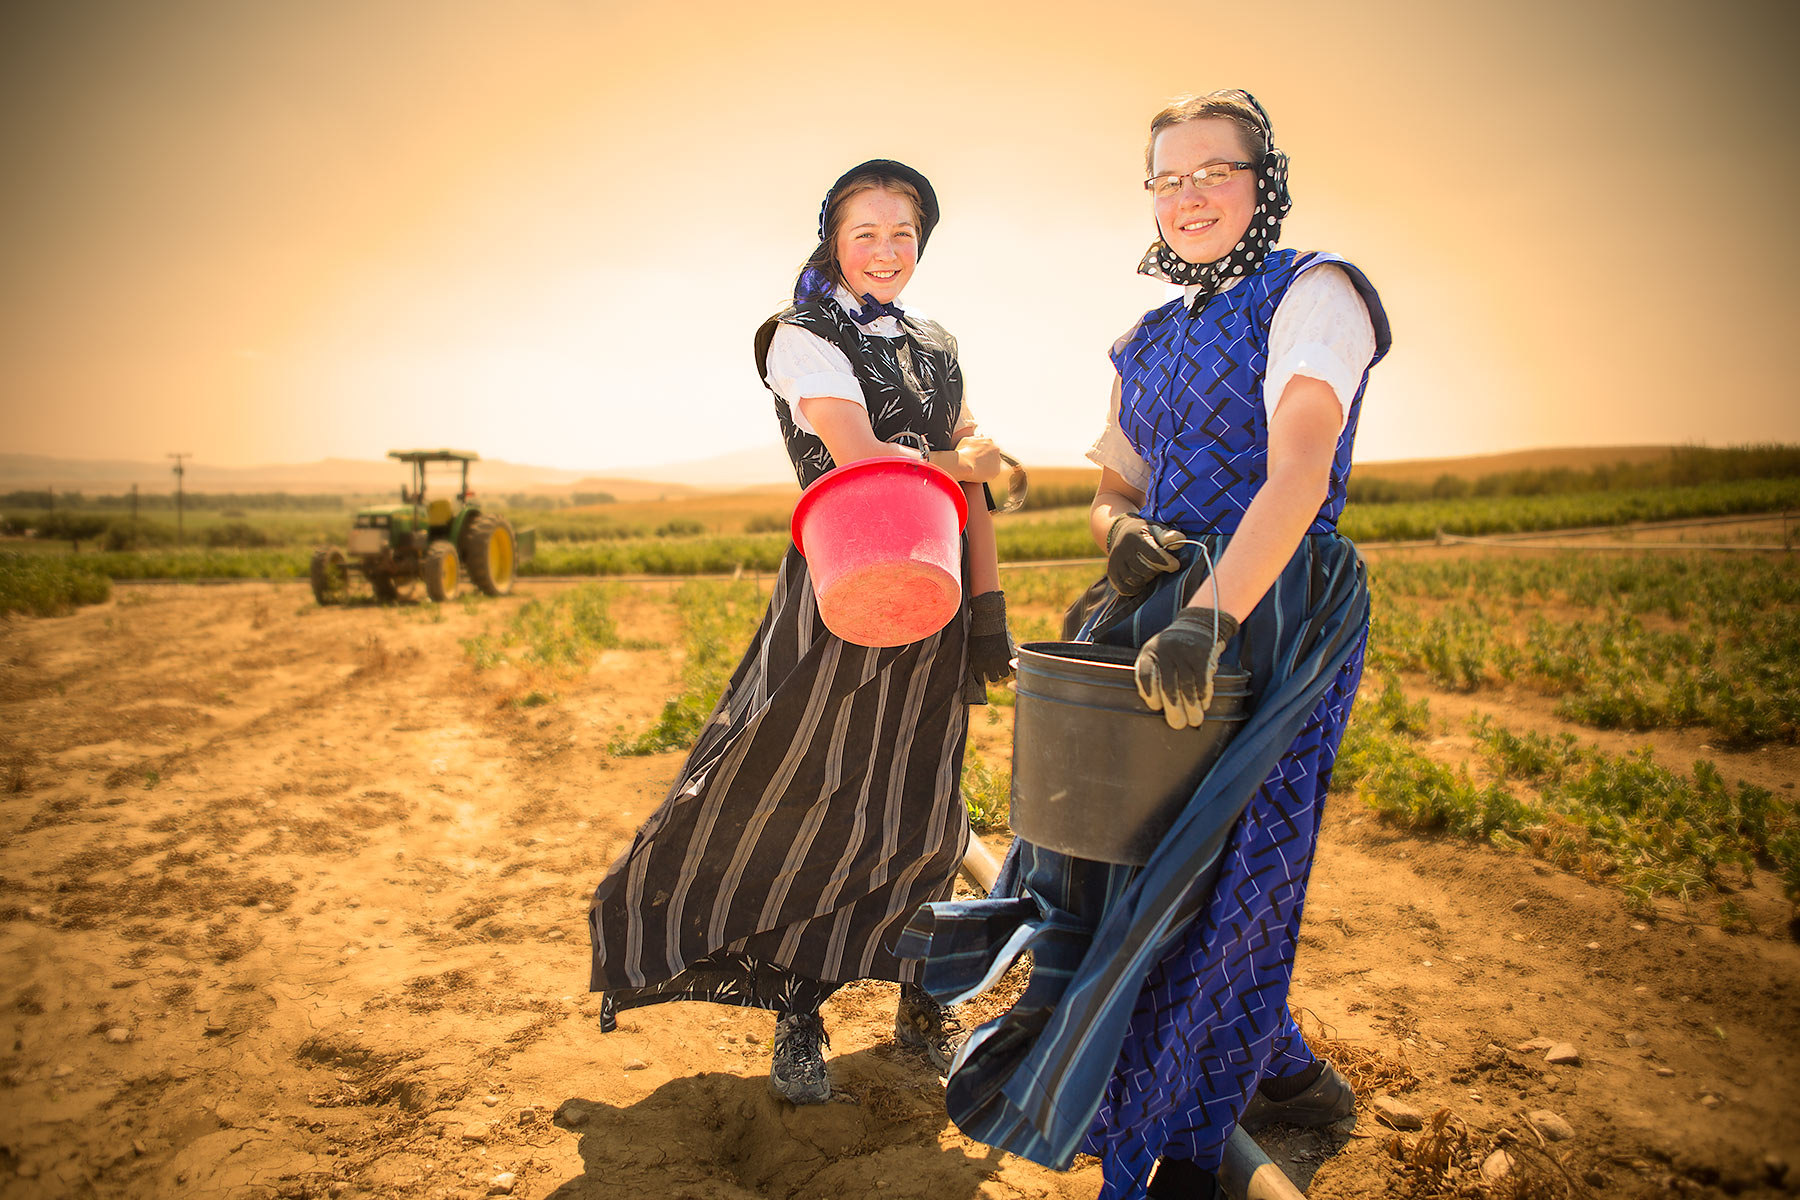 Hutterites-Girls-in-Field.jpg